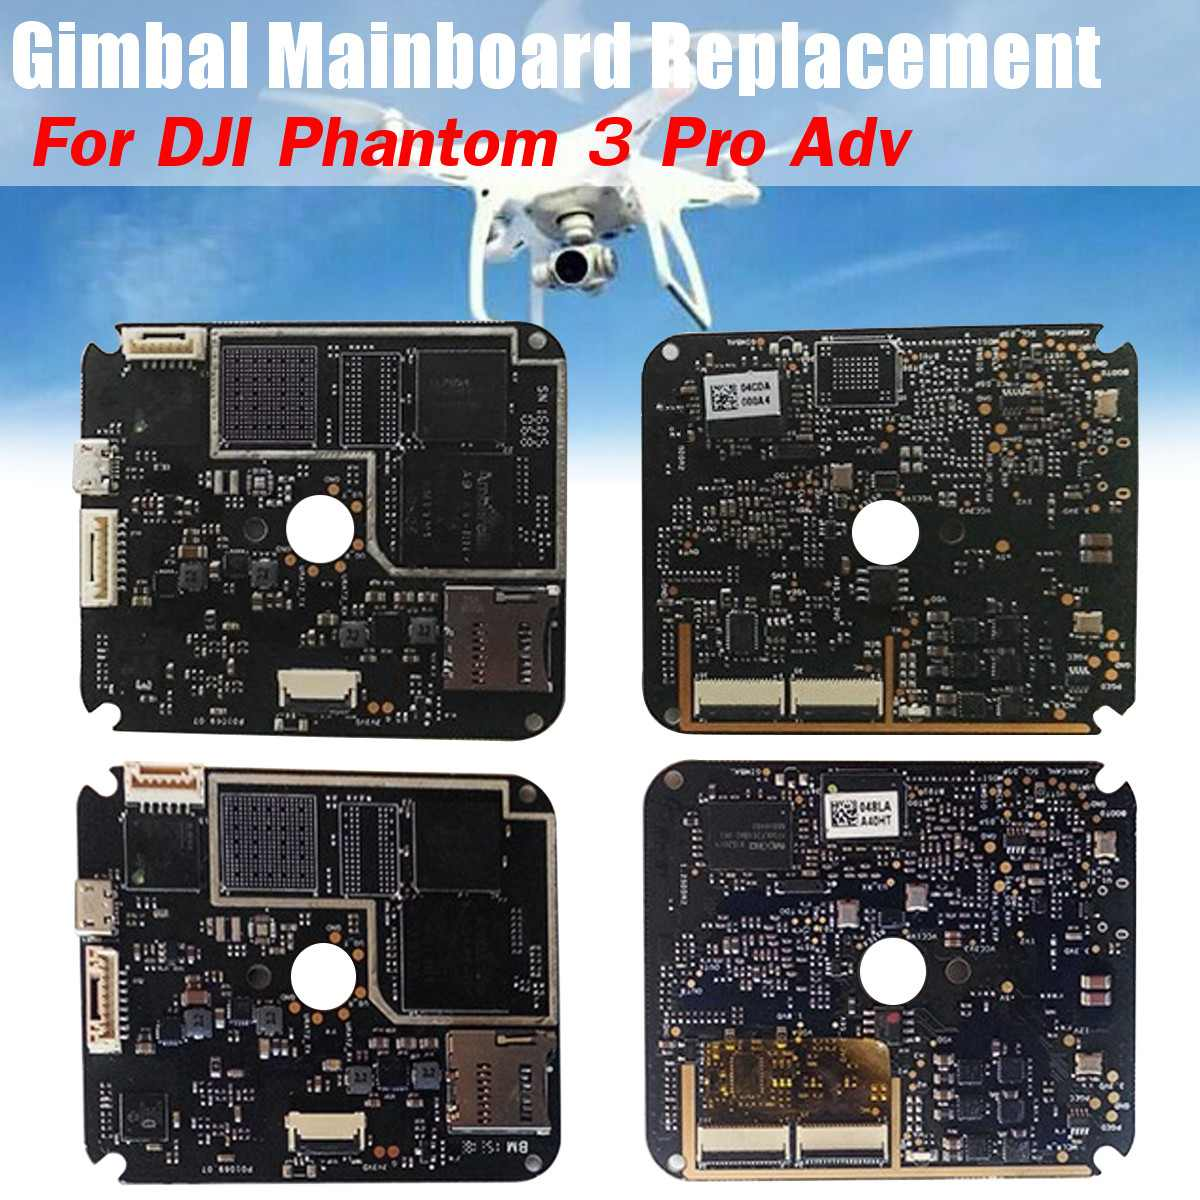 Repair Parts Gimbal Camera Forward Sensor Control Board Mainboard For Dji Phantom 3 Adv For Dji Phantom 3 Pro Drone Replacement